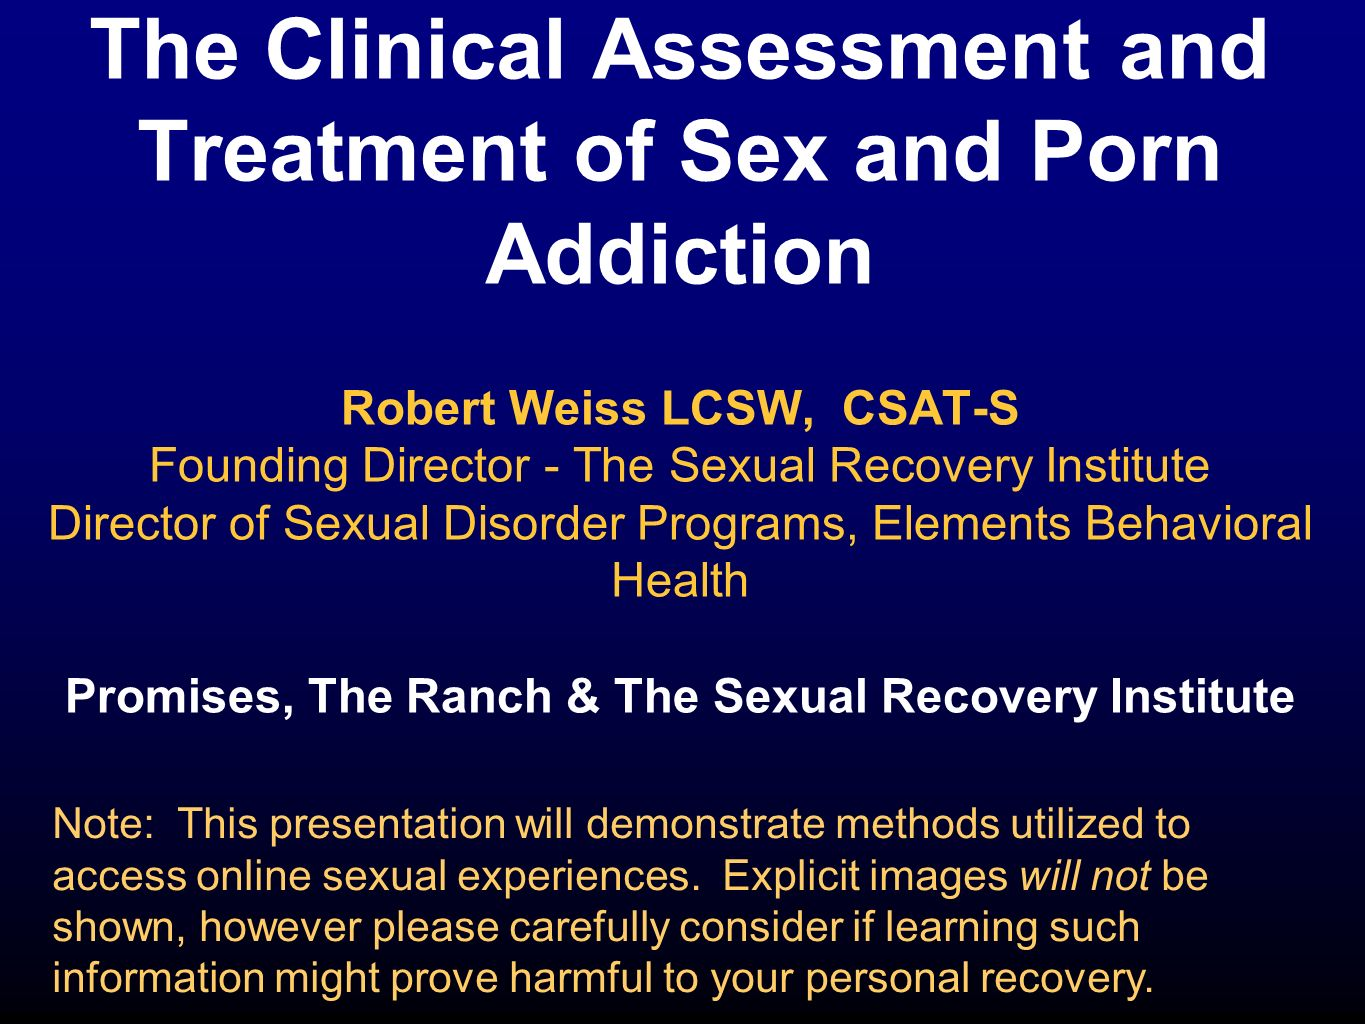 The Clinical Assessment and Treatment of Sex and Porn Addiction Robert Weiss LCSW, CSAT-S Founding Director - The Sexual Recovery Institute Director o